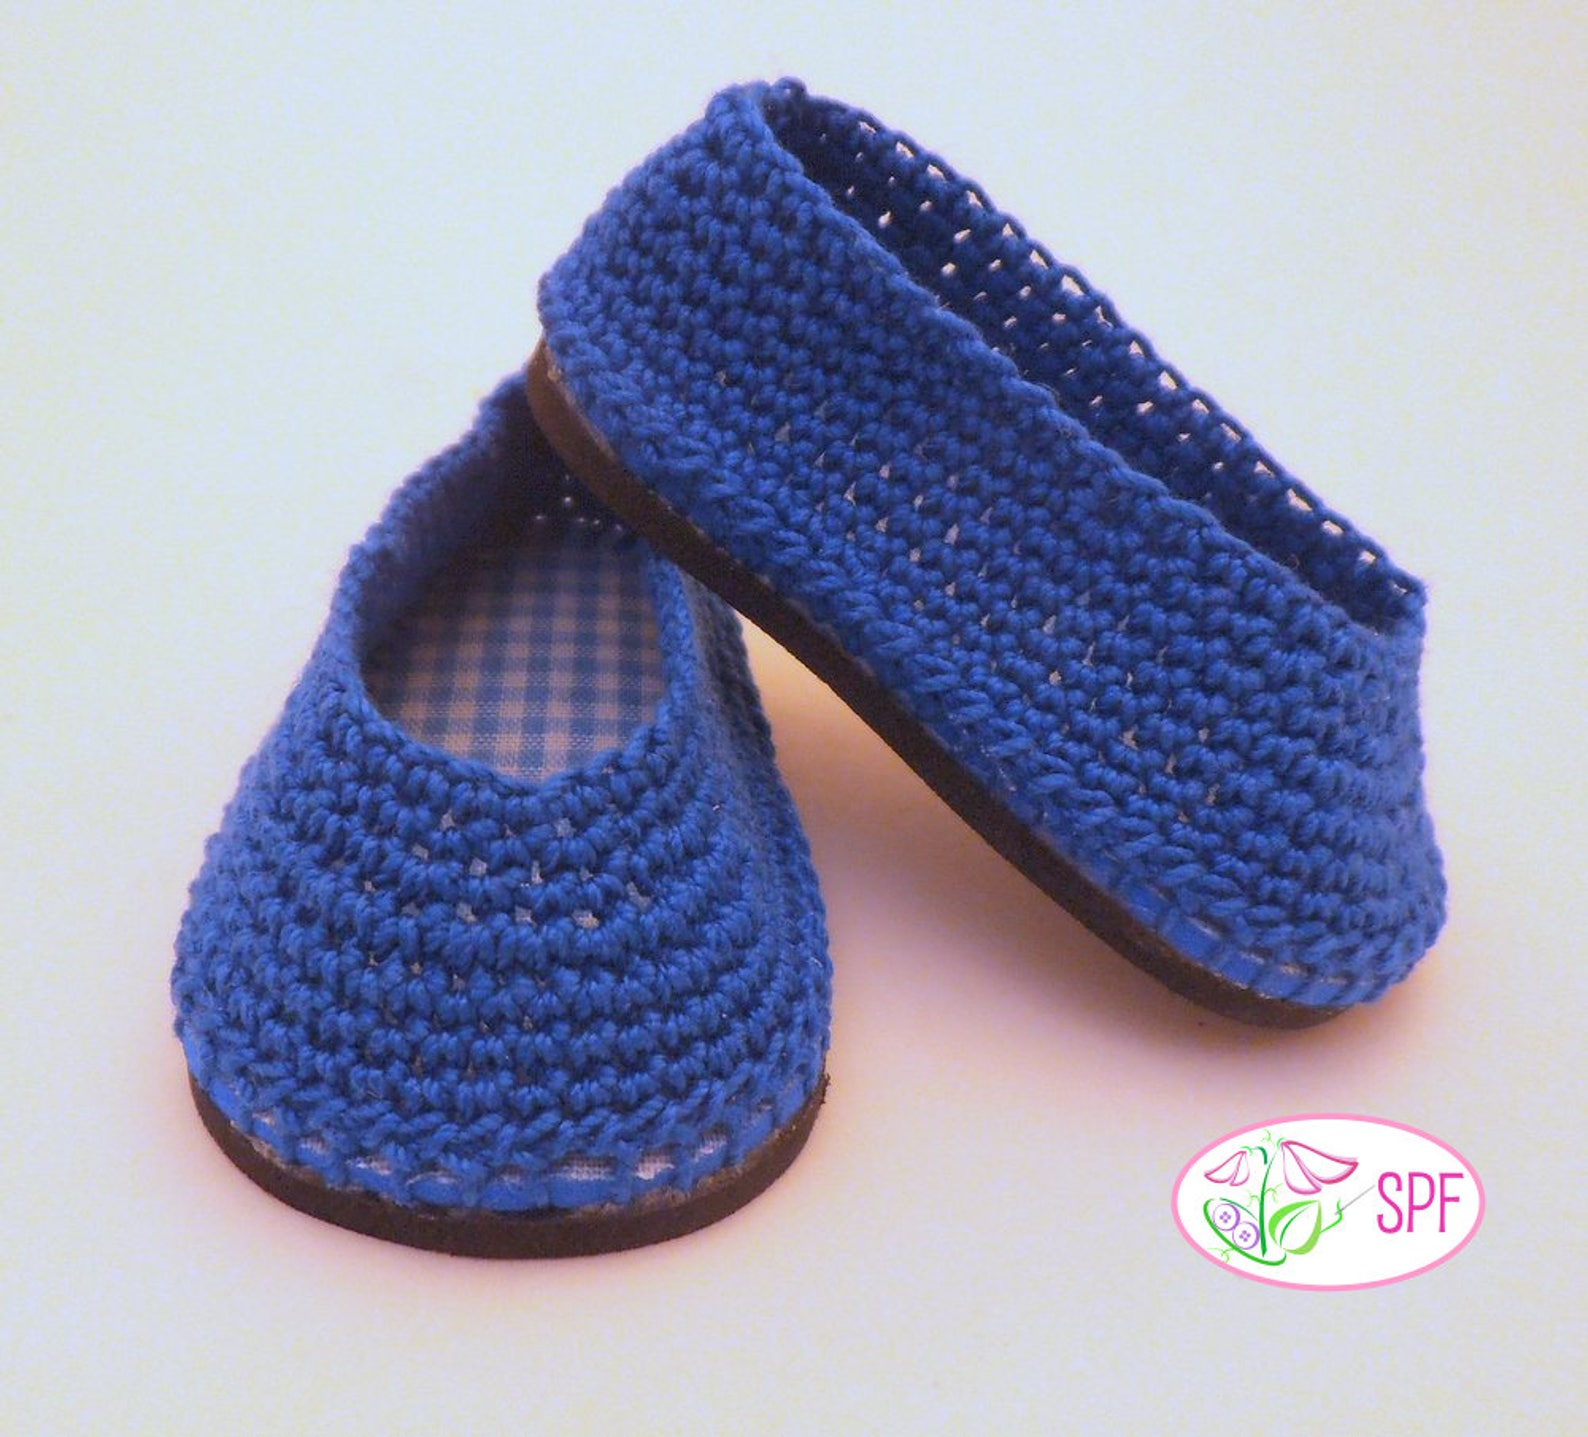 pixie faire sweet pea fashions paloma crocheted ballet flats doll clothes crochet pattern for 18 inch american girl dolls- pdf